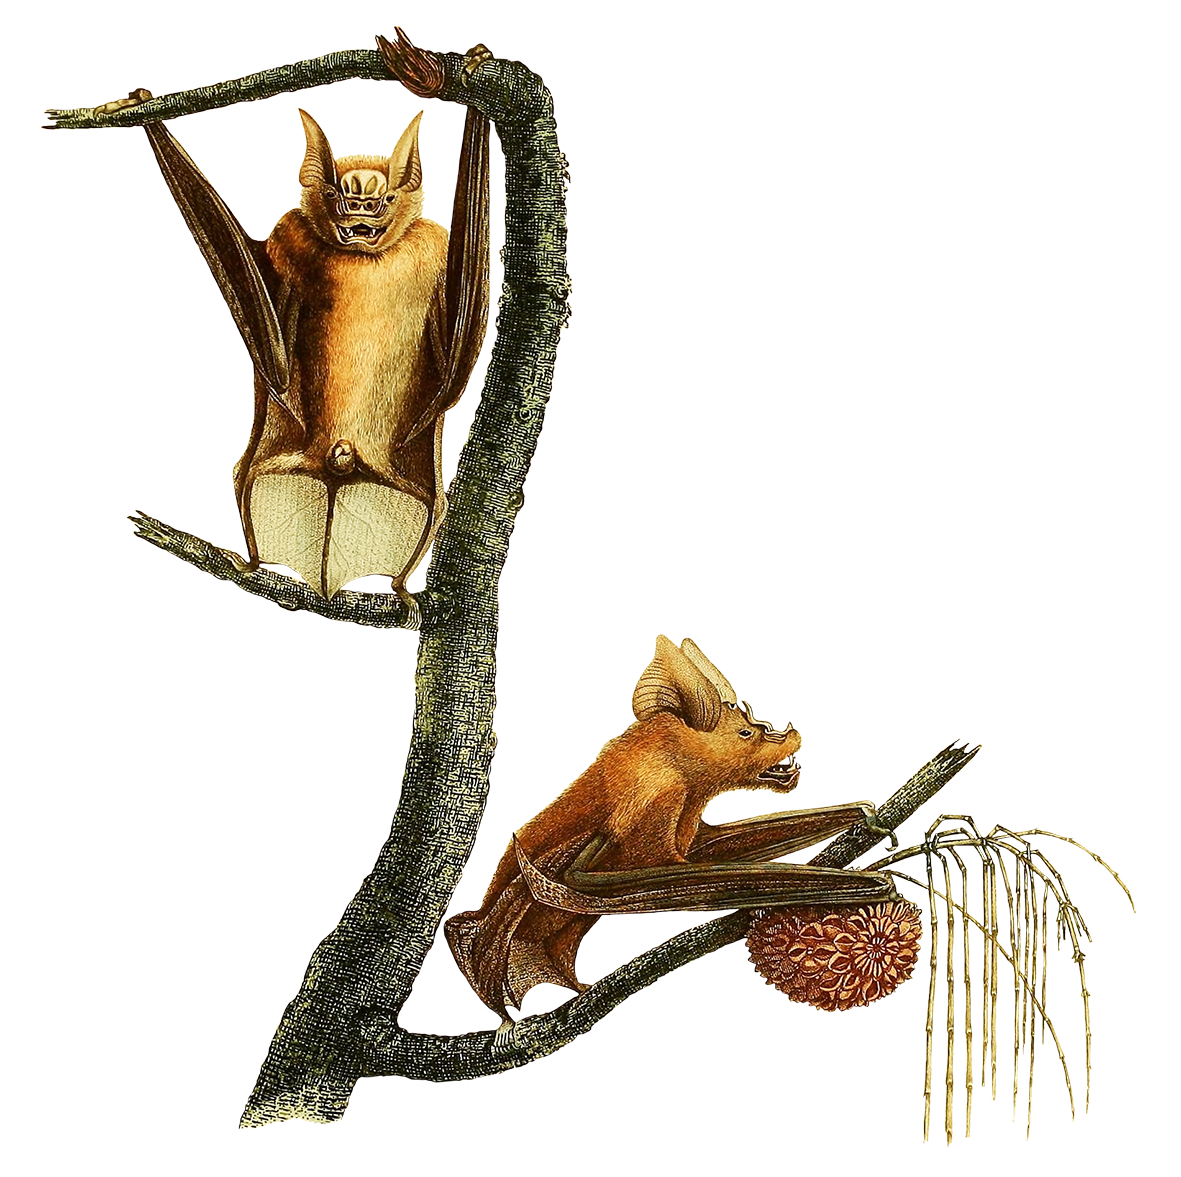 two fruit bats in a tree